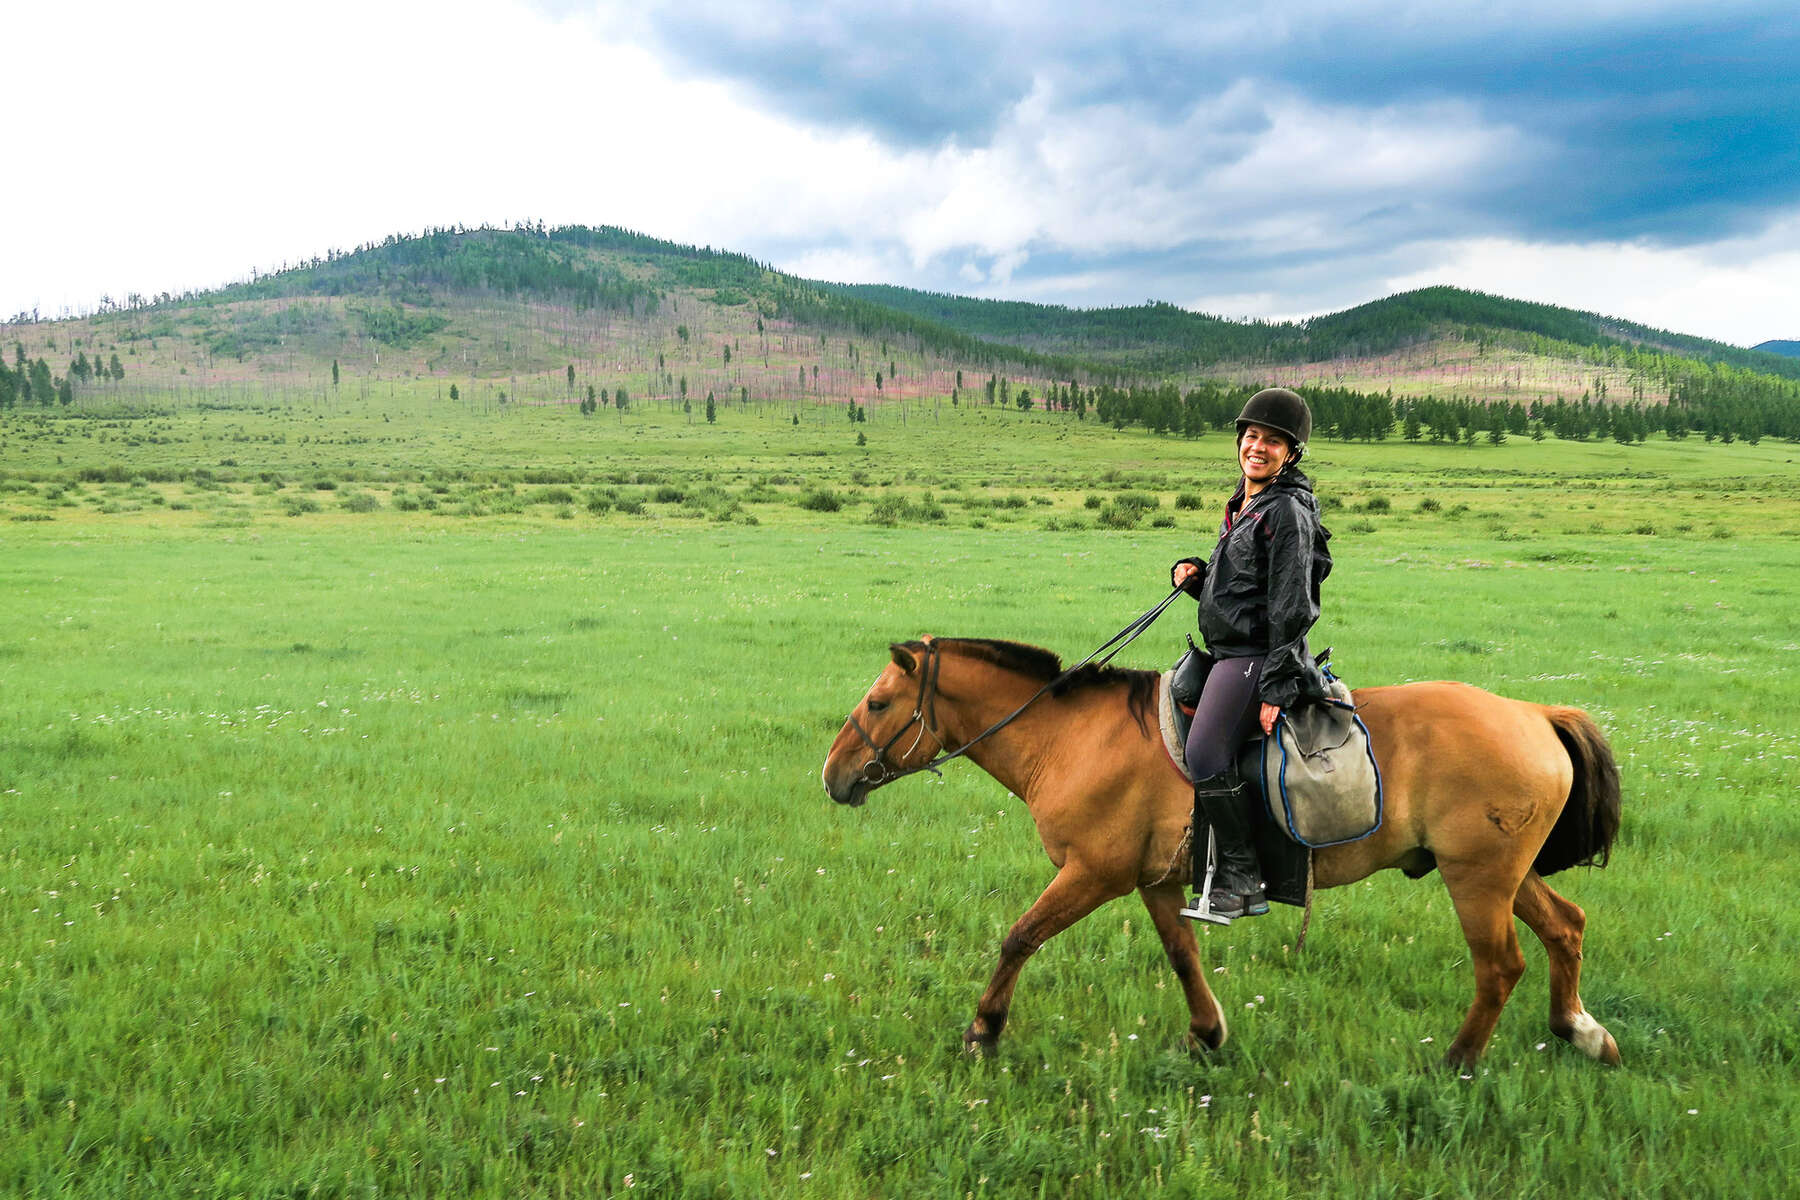 A rider smiling at the camera in Mongolia